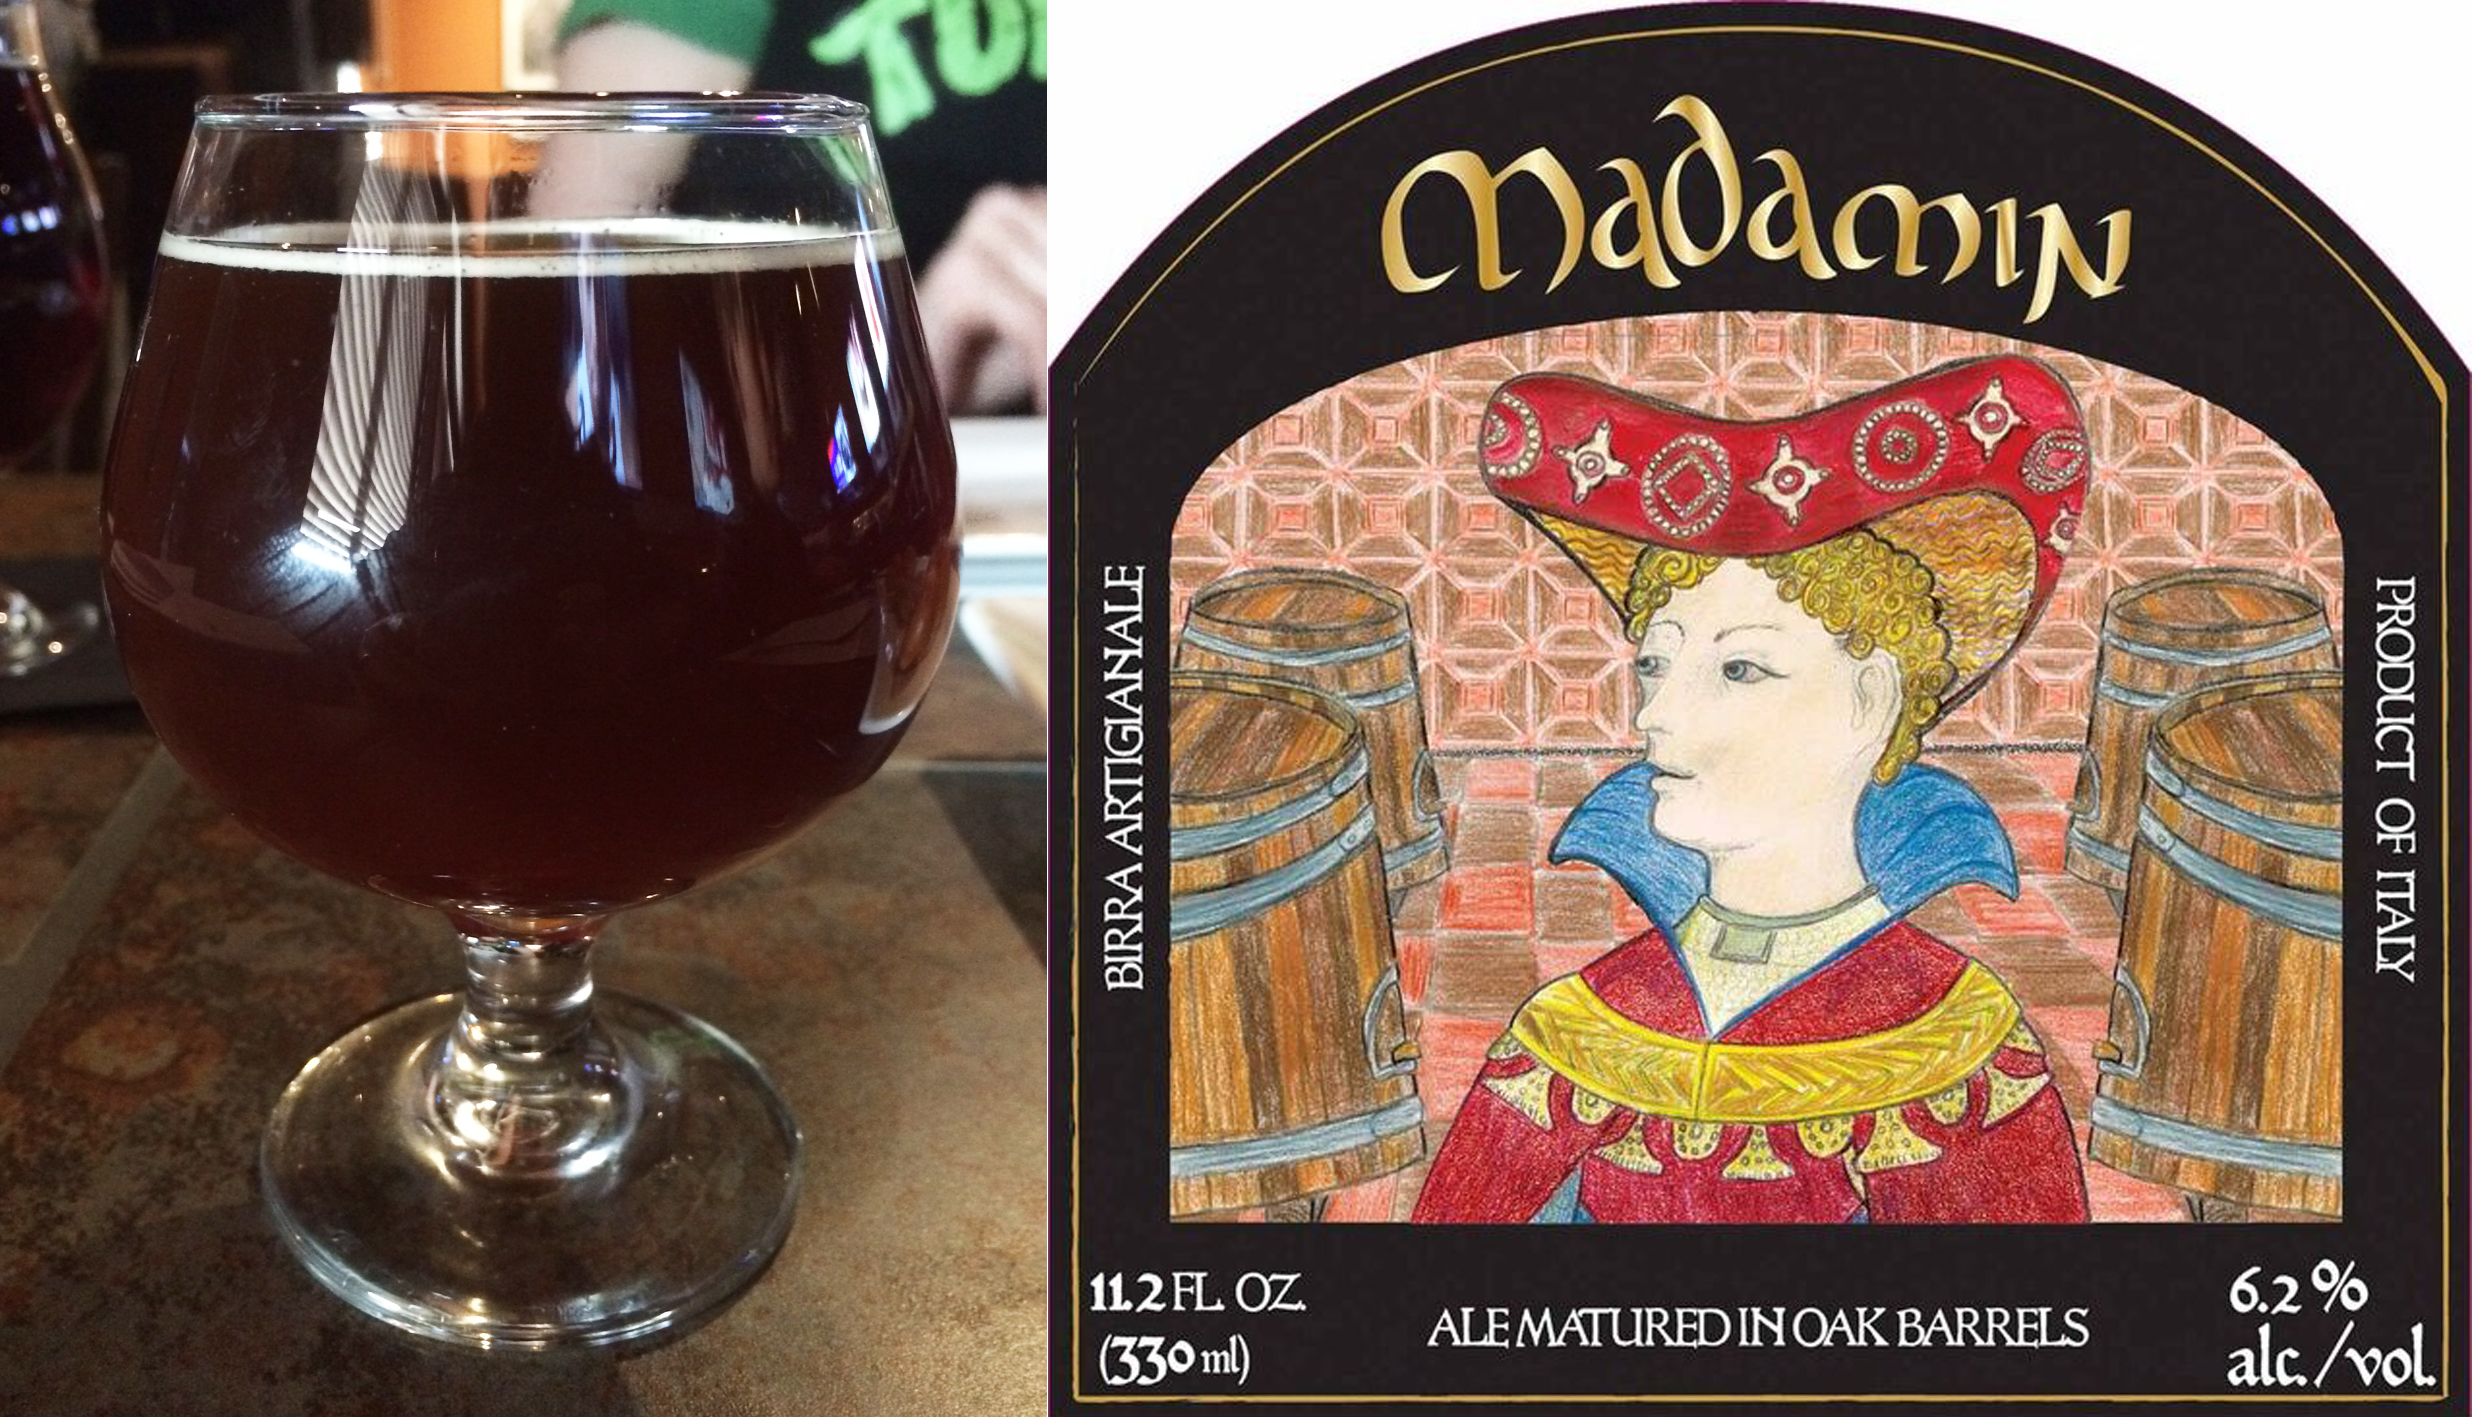 Review: LoverBeer Madamin Sour Amber Ale